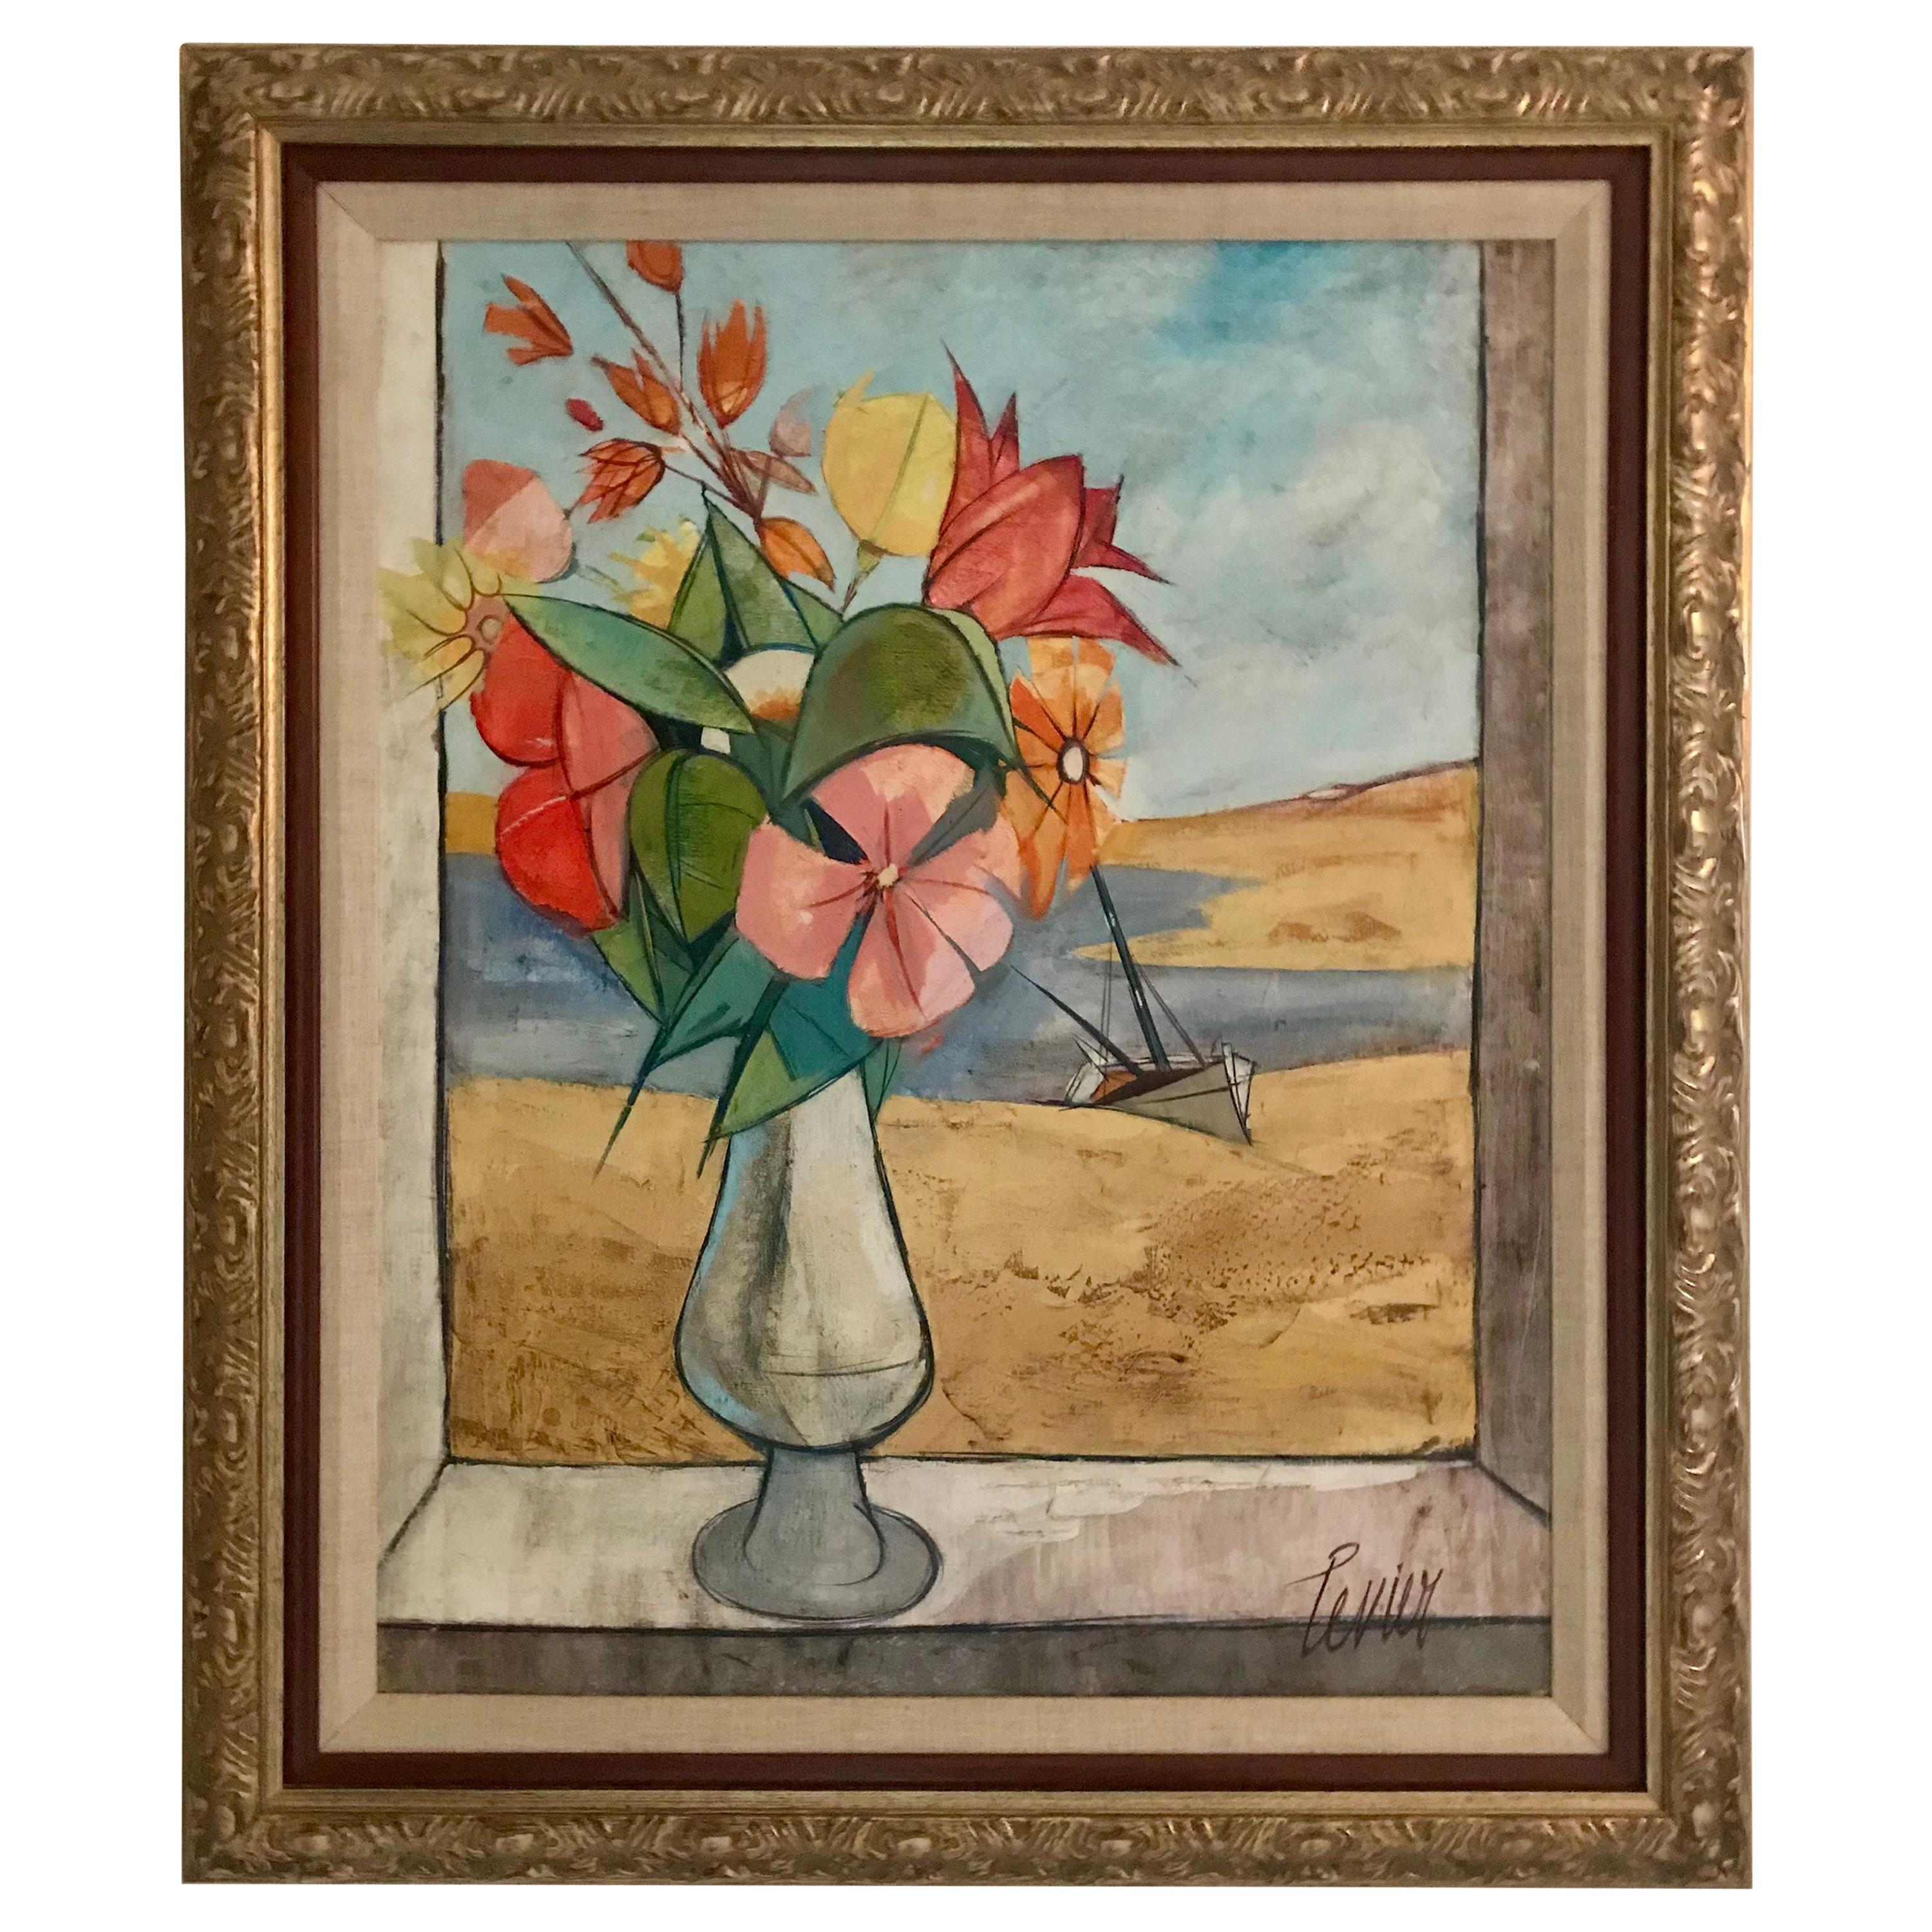 Rare Seascape and Bouquet Oil on Cancas by Charles Levier, 1958